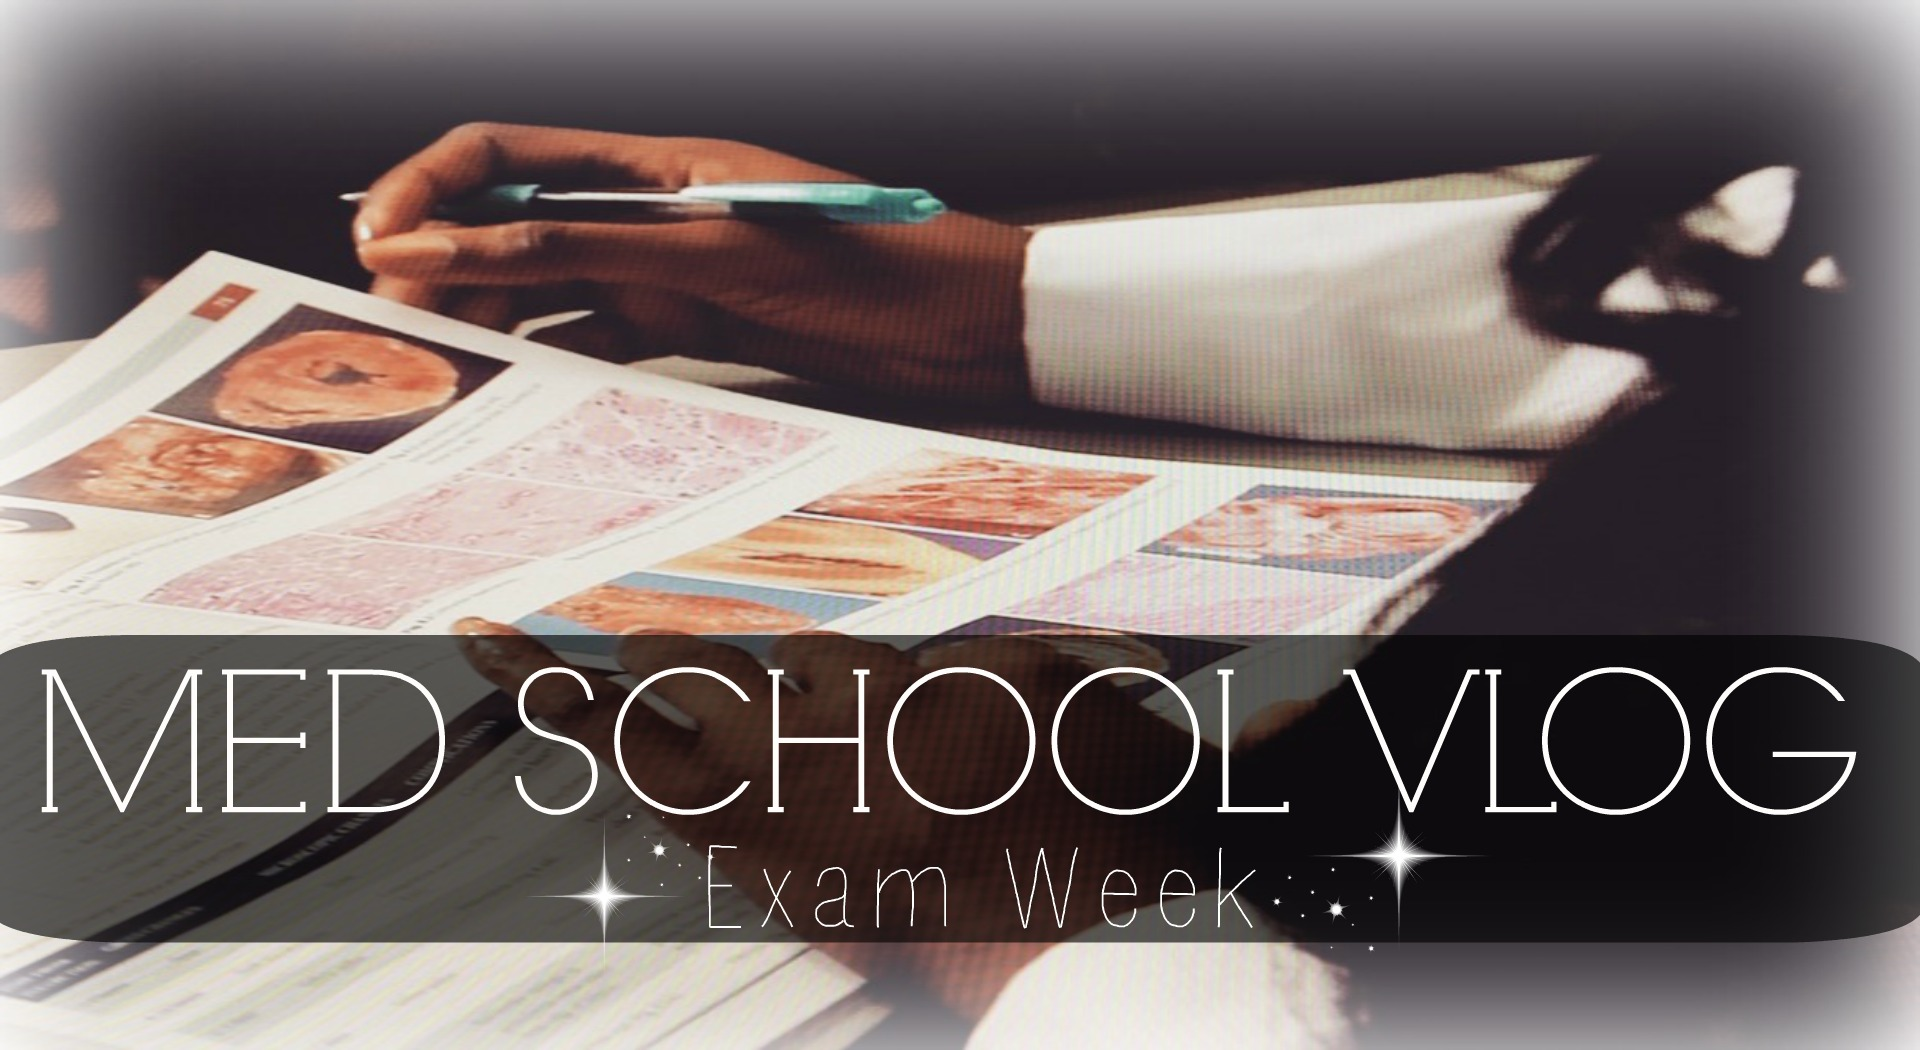 Exam week thumbnail.jpg